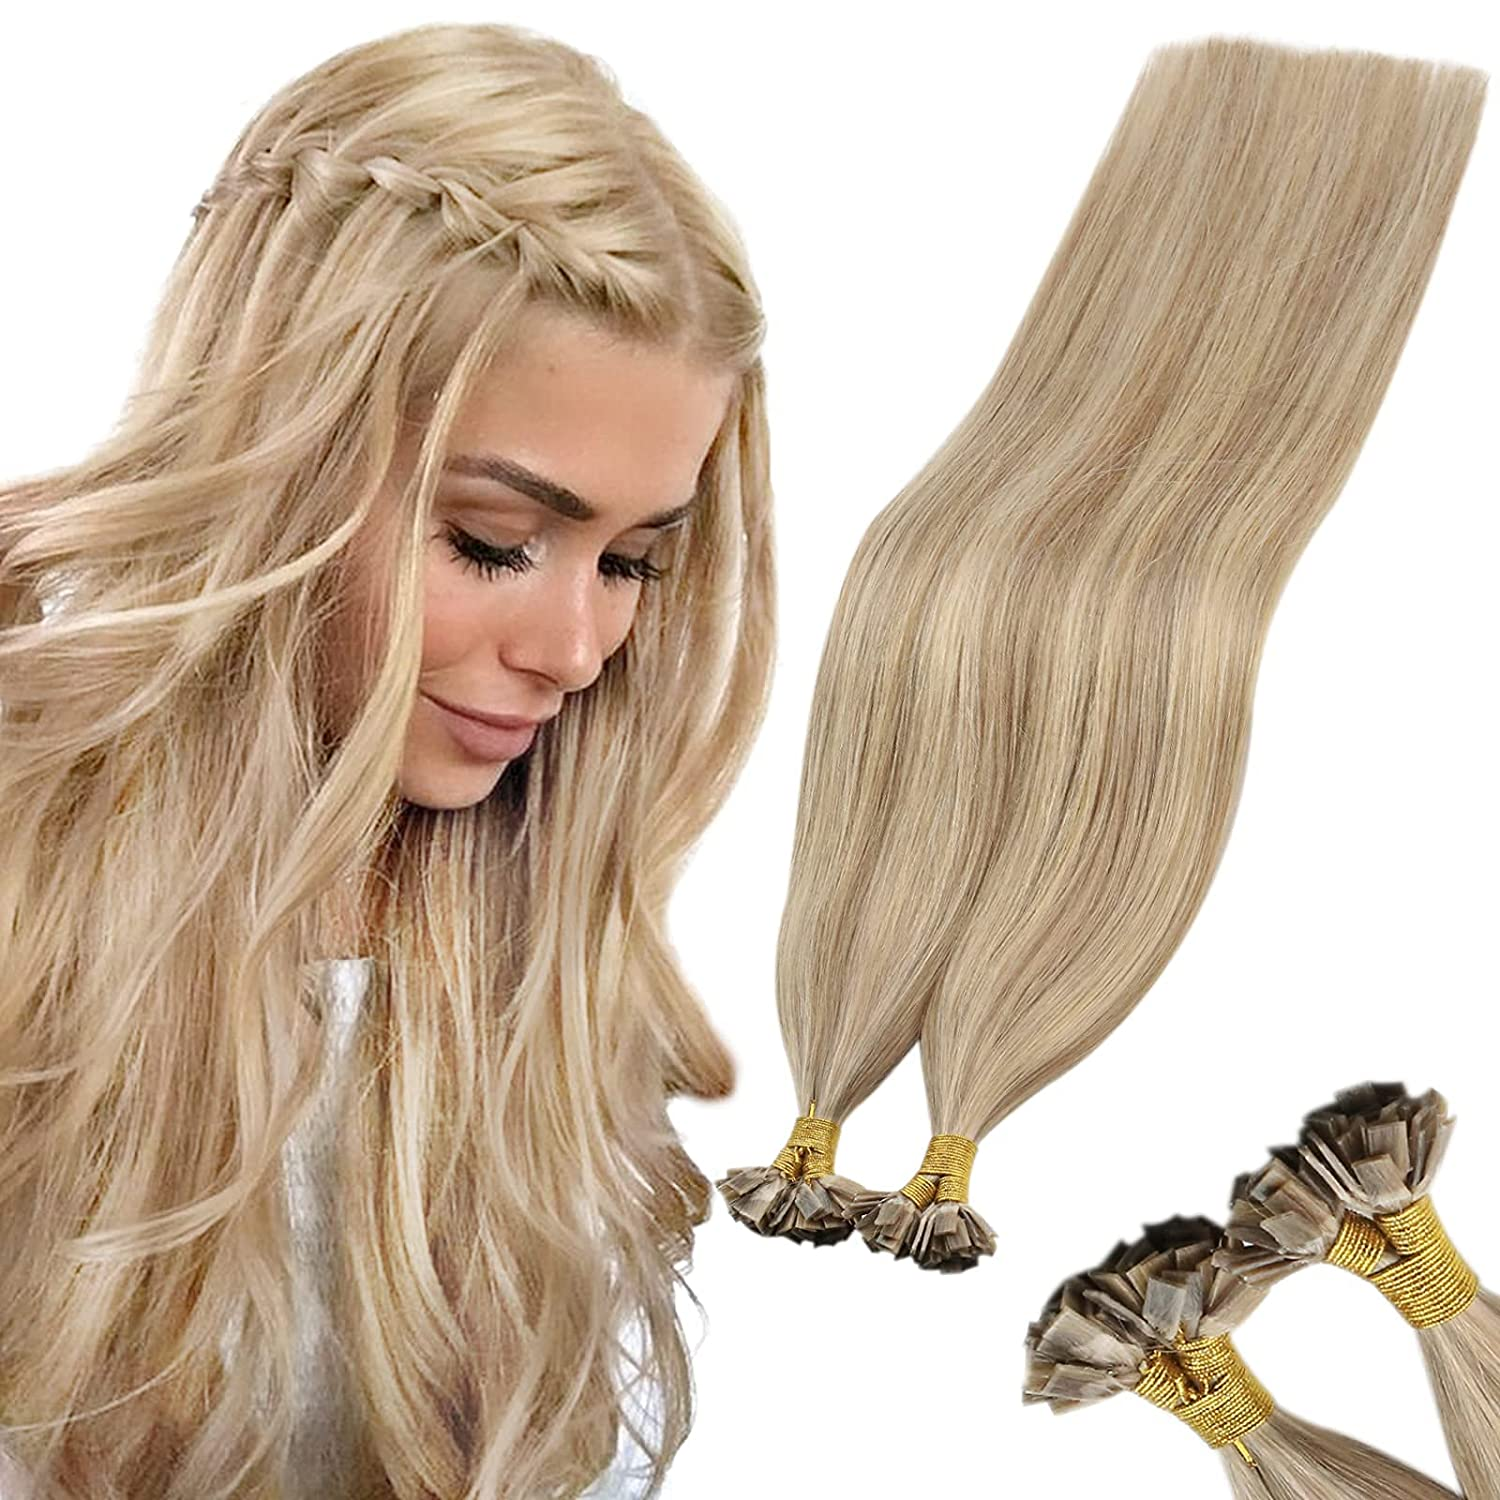 Sunny overseas Fresno Mall 20inch Prebonded Flat Tip Hair Blonde Extensions wi Golden